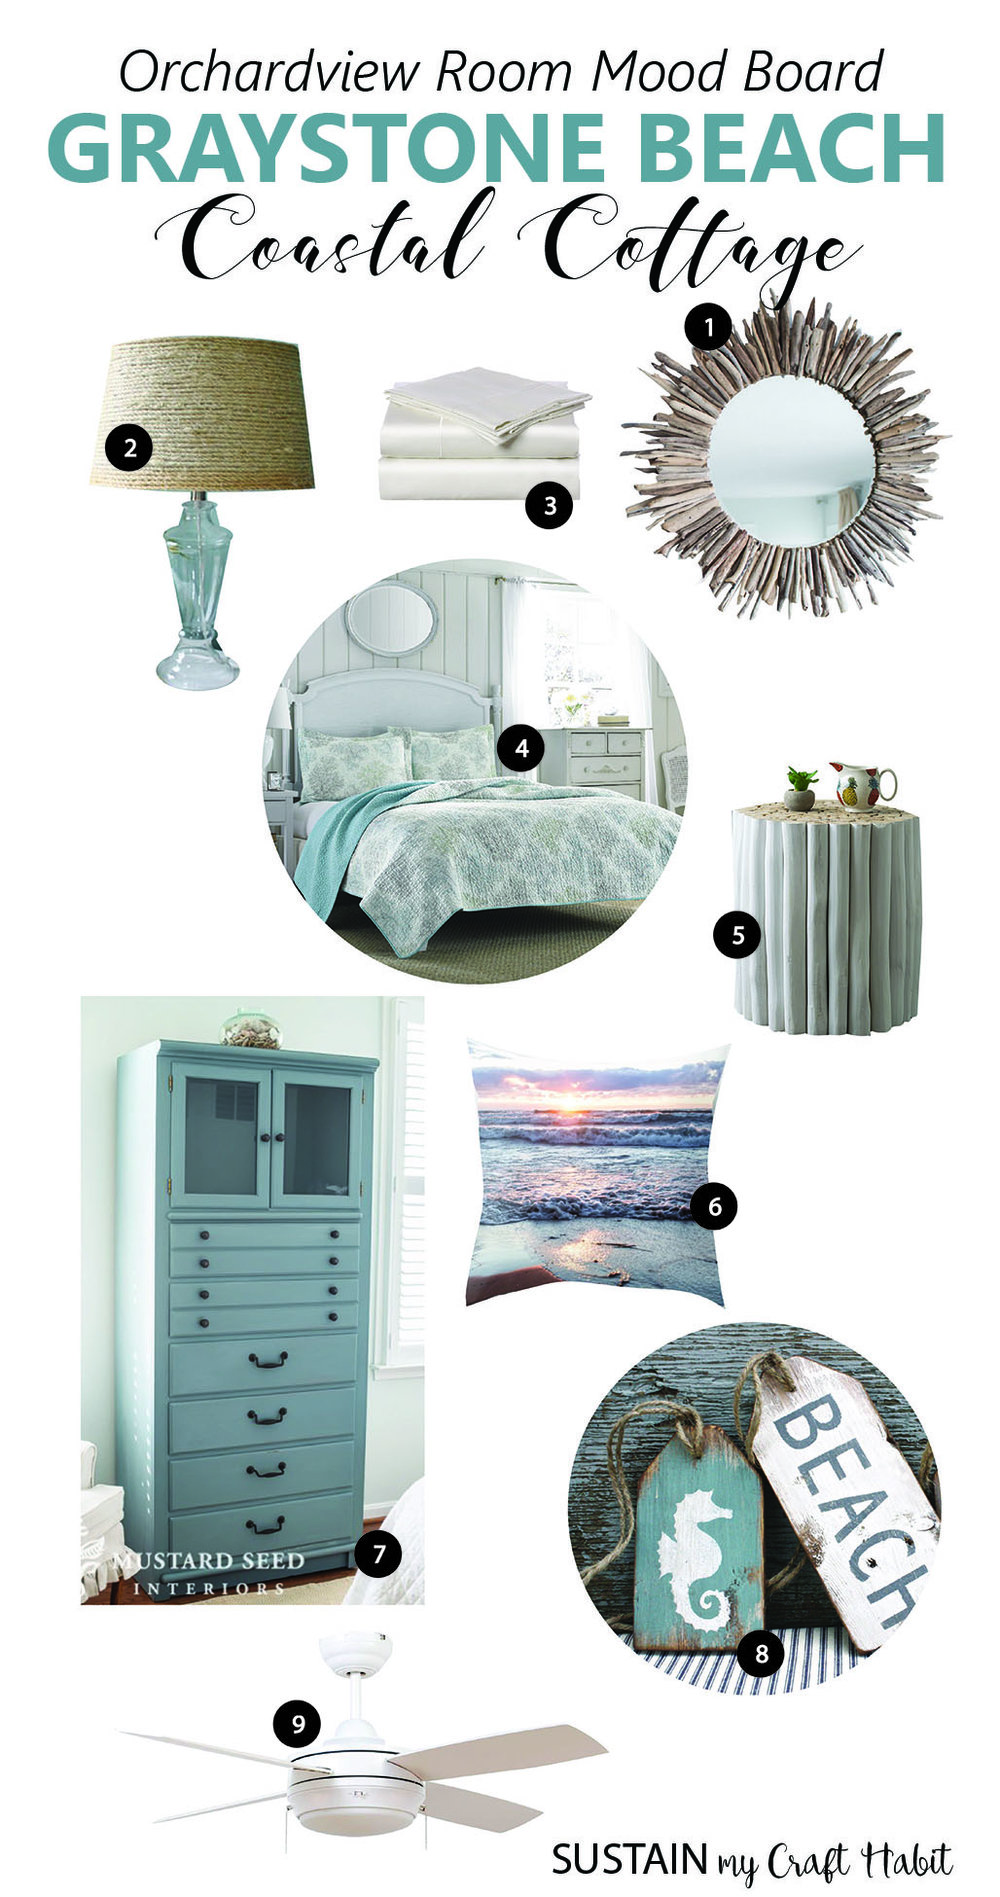 Created the mood board for the Orchardview Bedroom